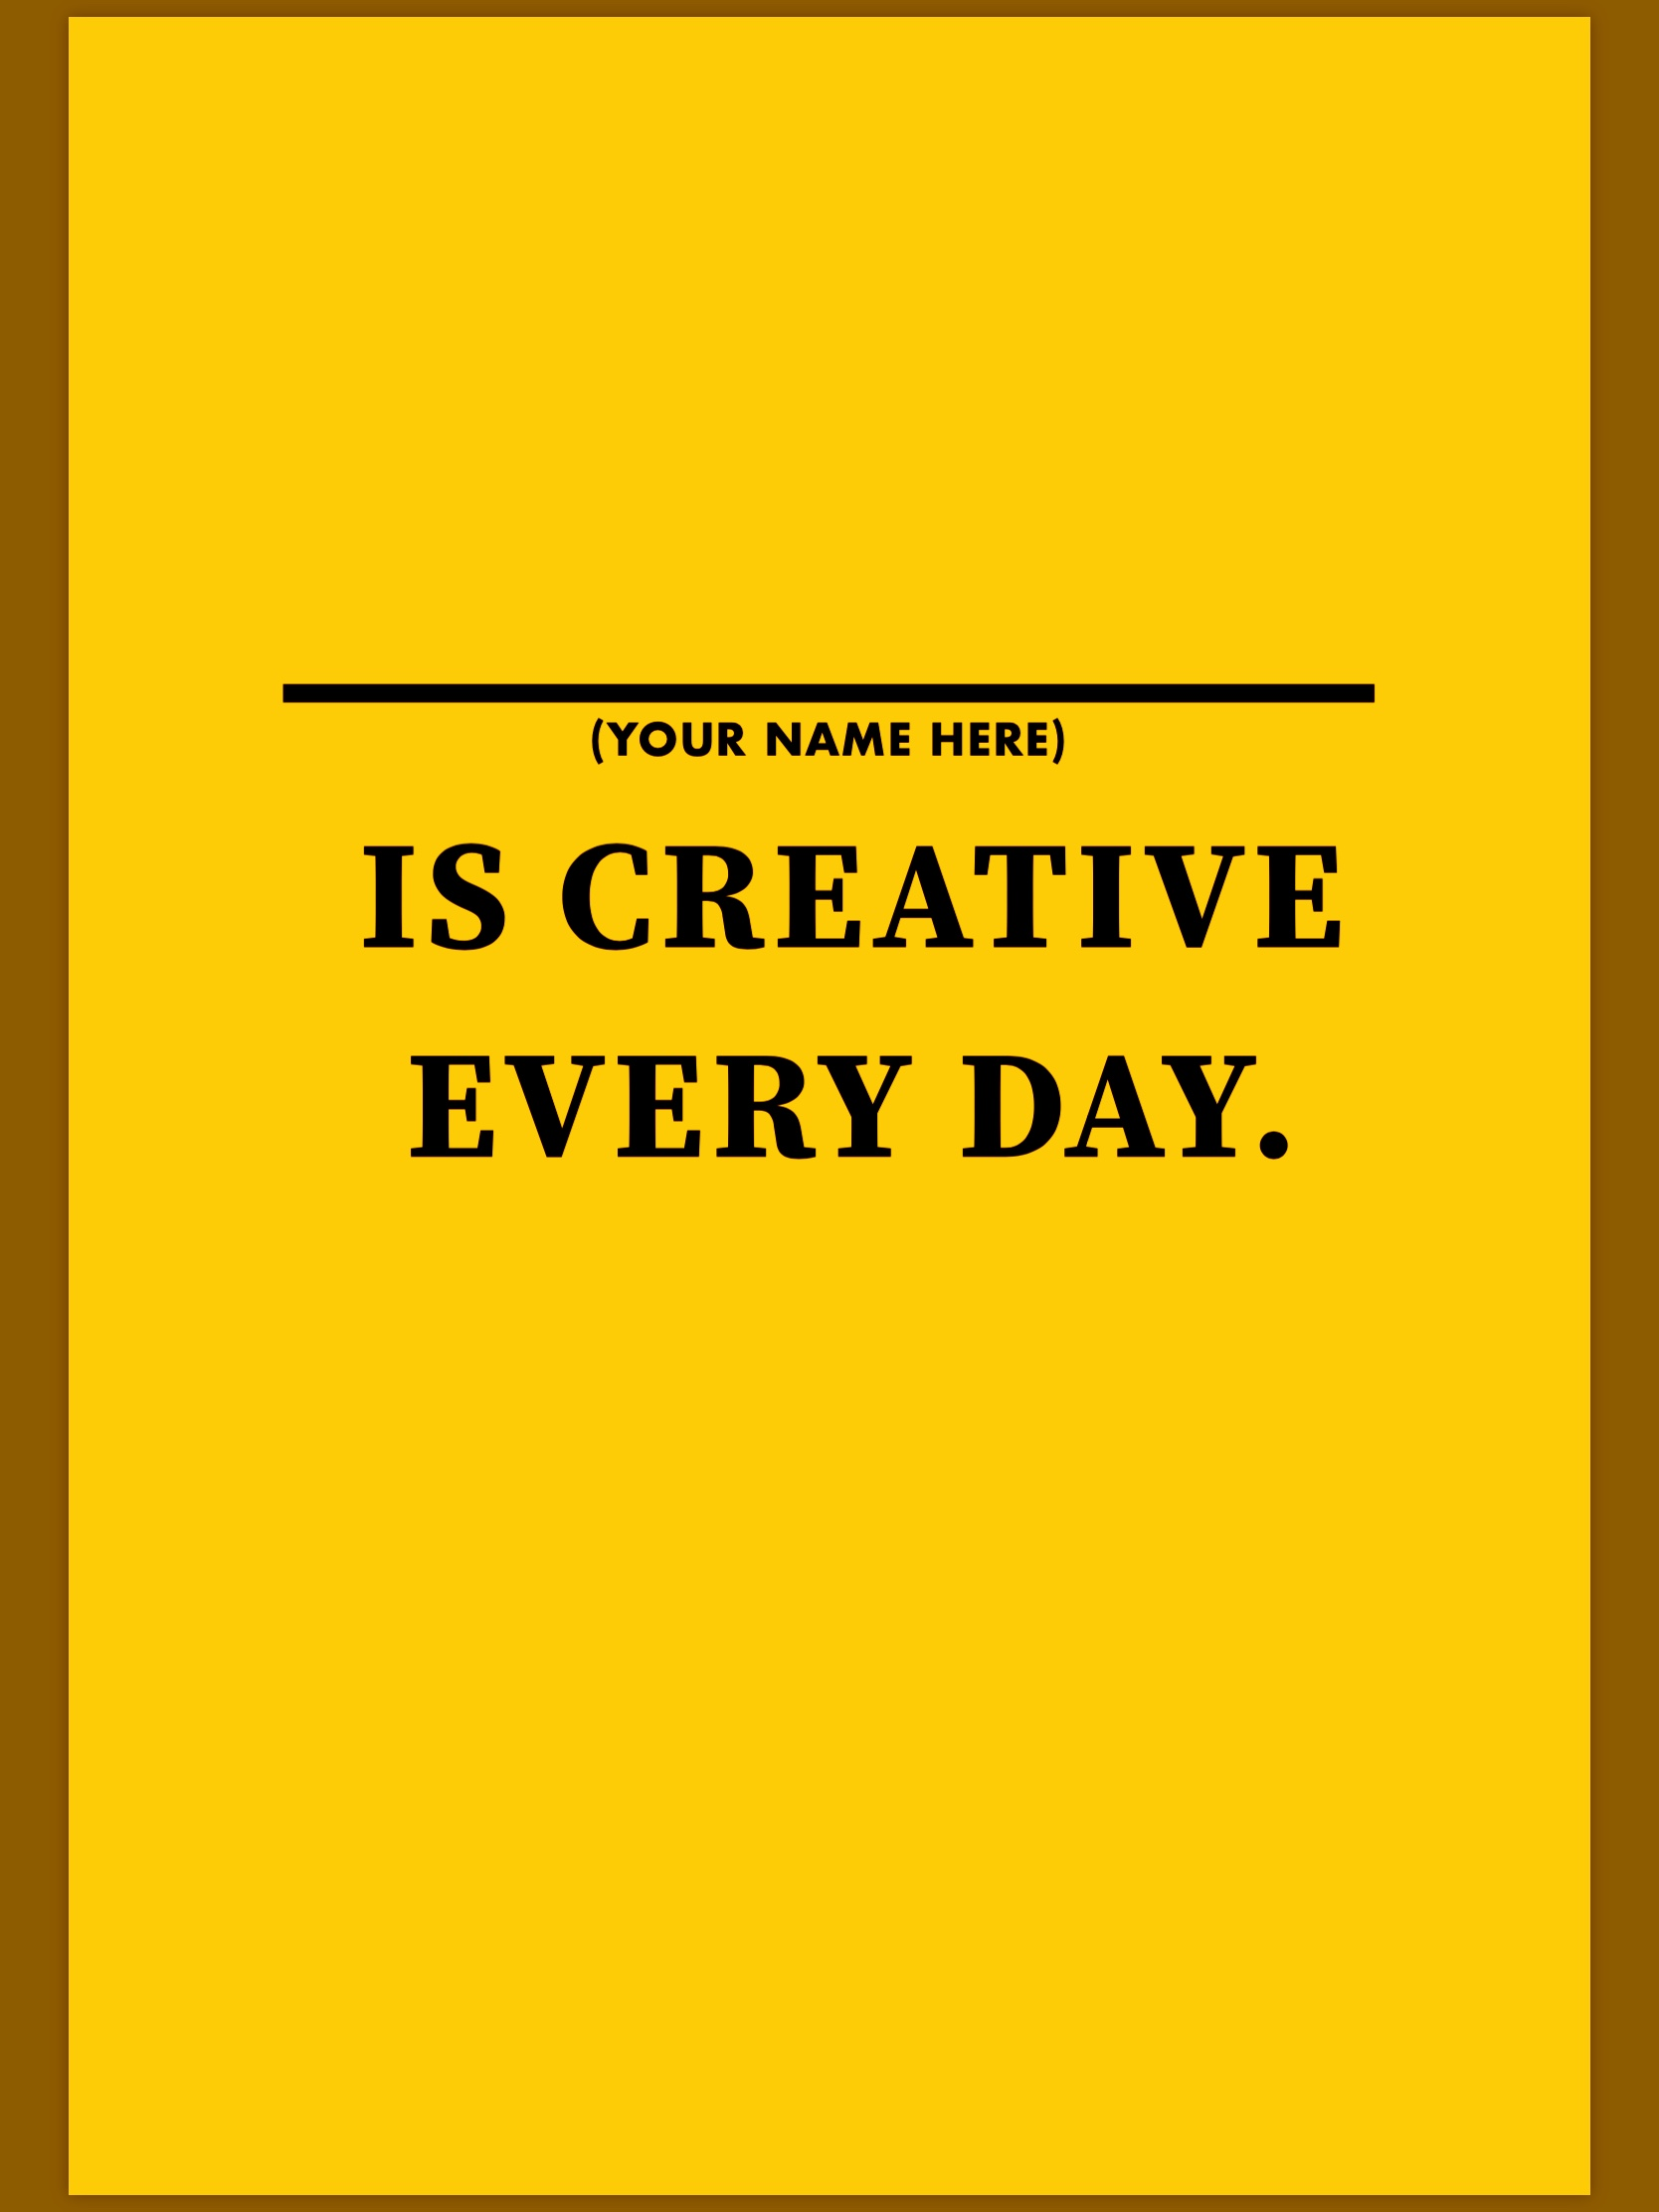 How to Be Creative Every Day